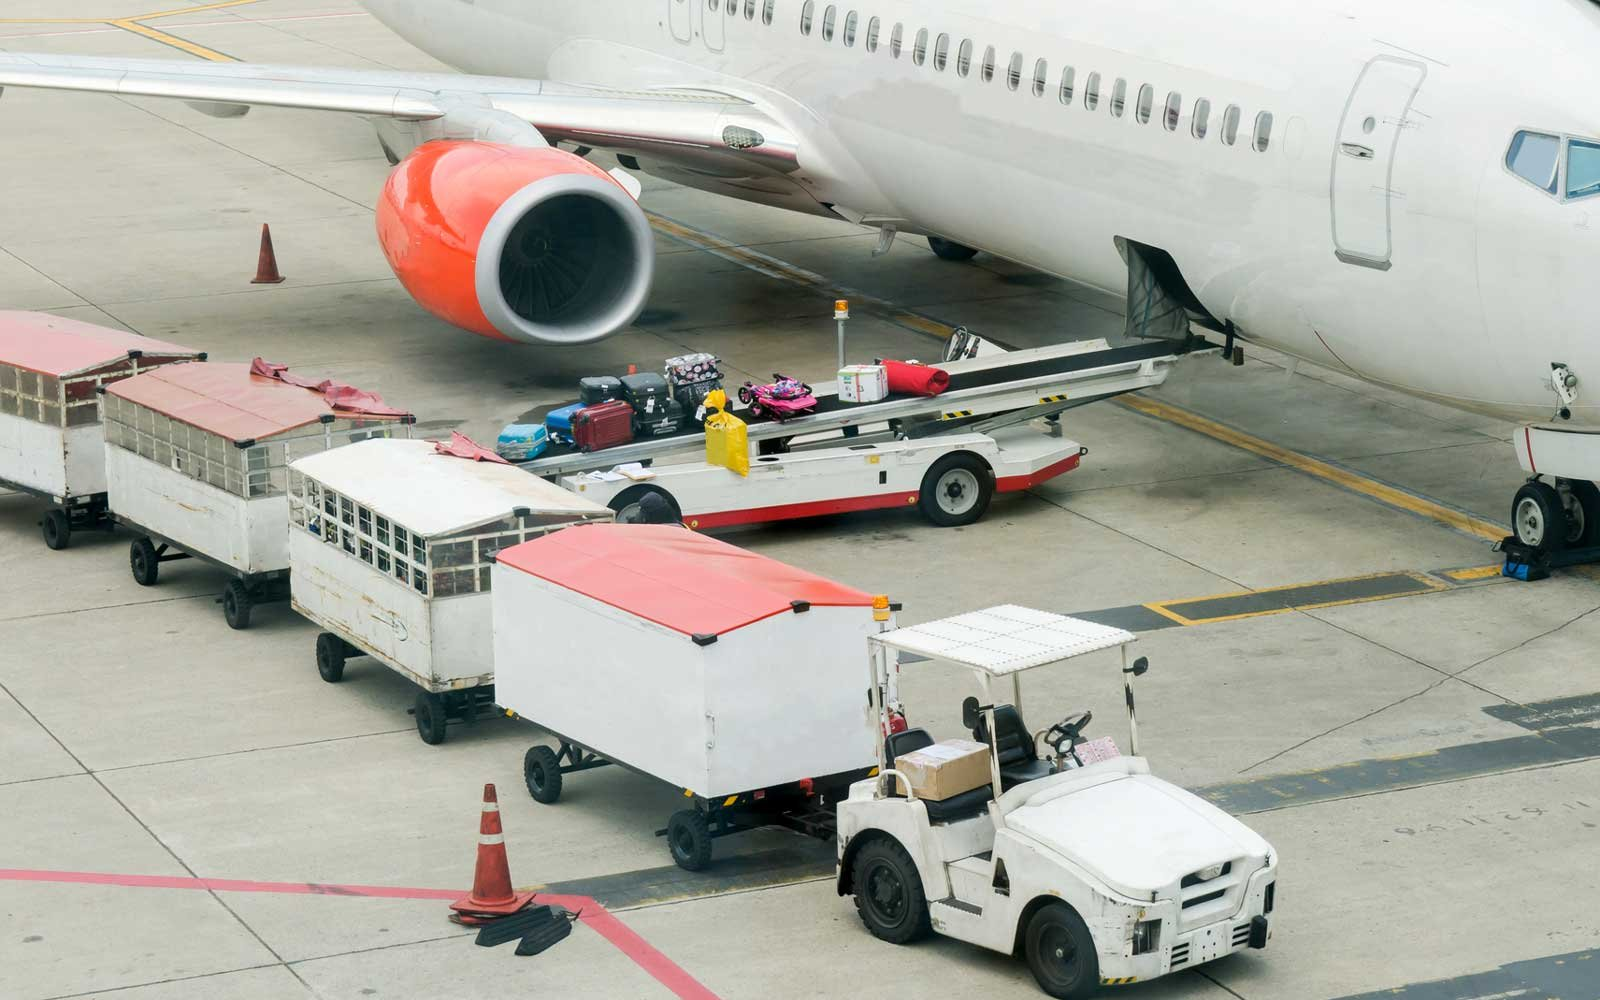 Baggage, airport, airplane